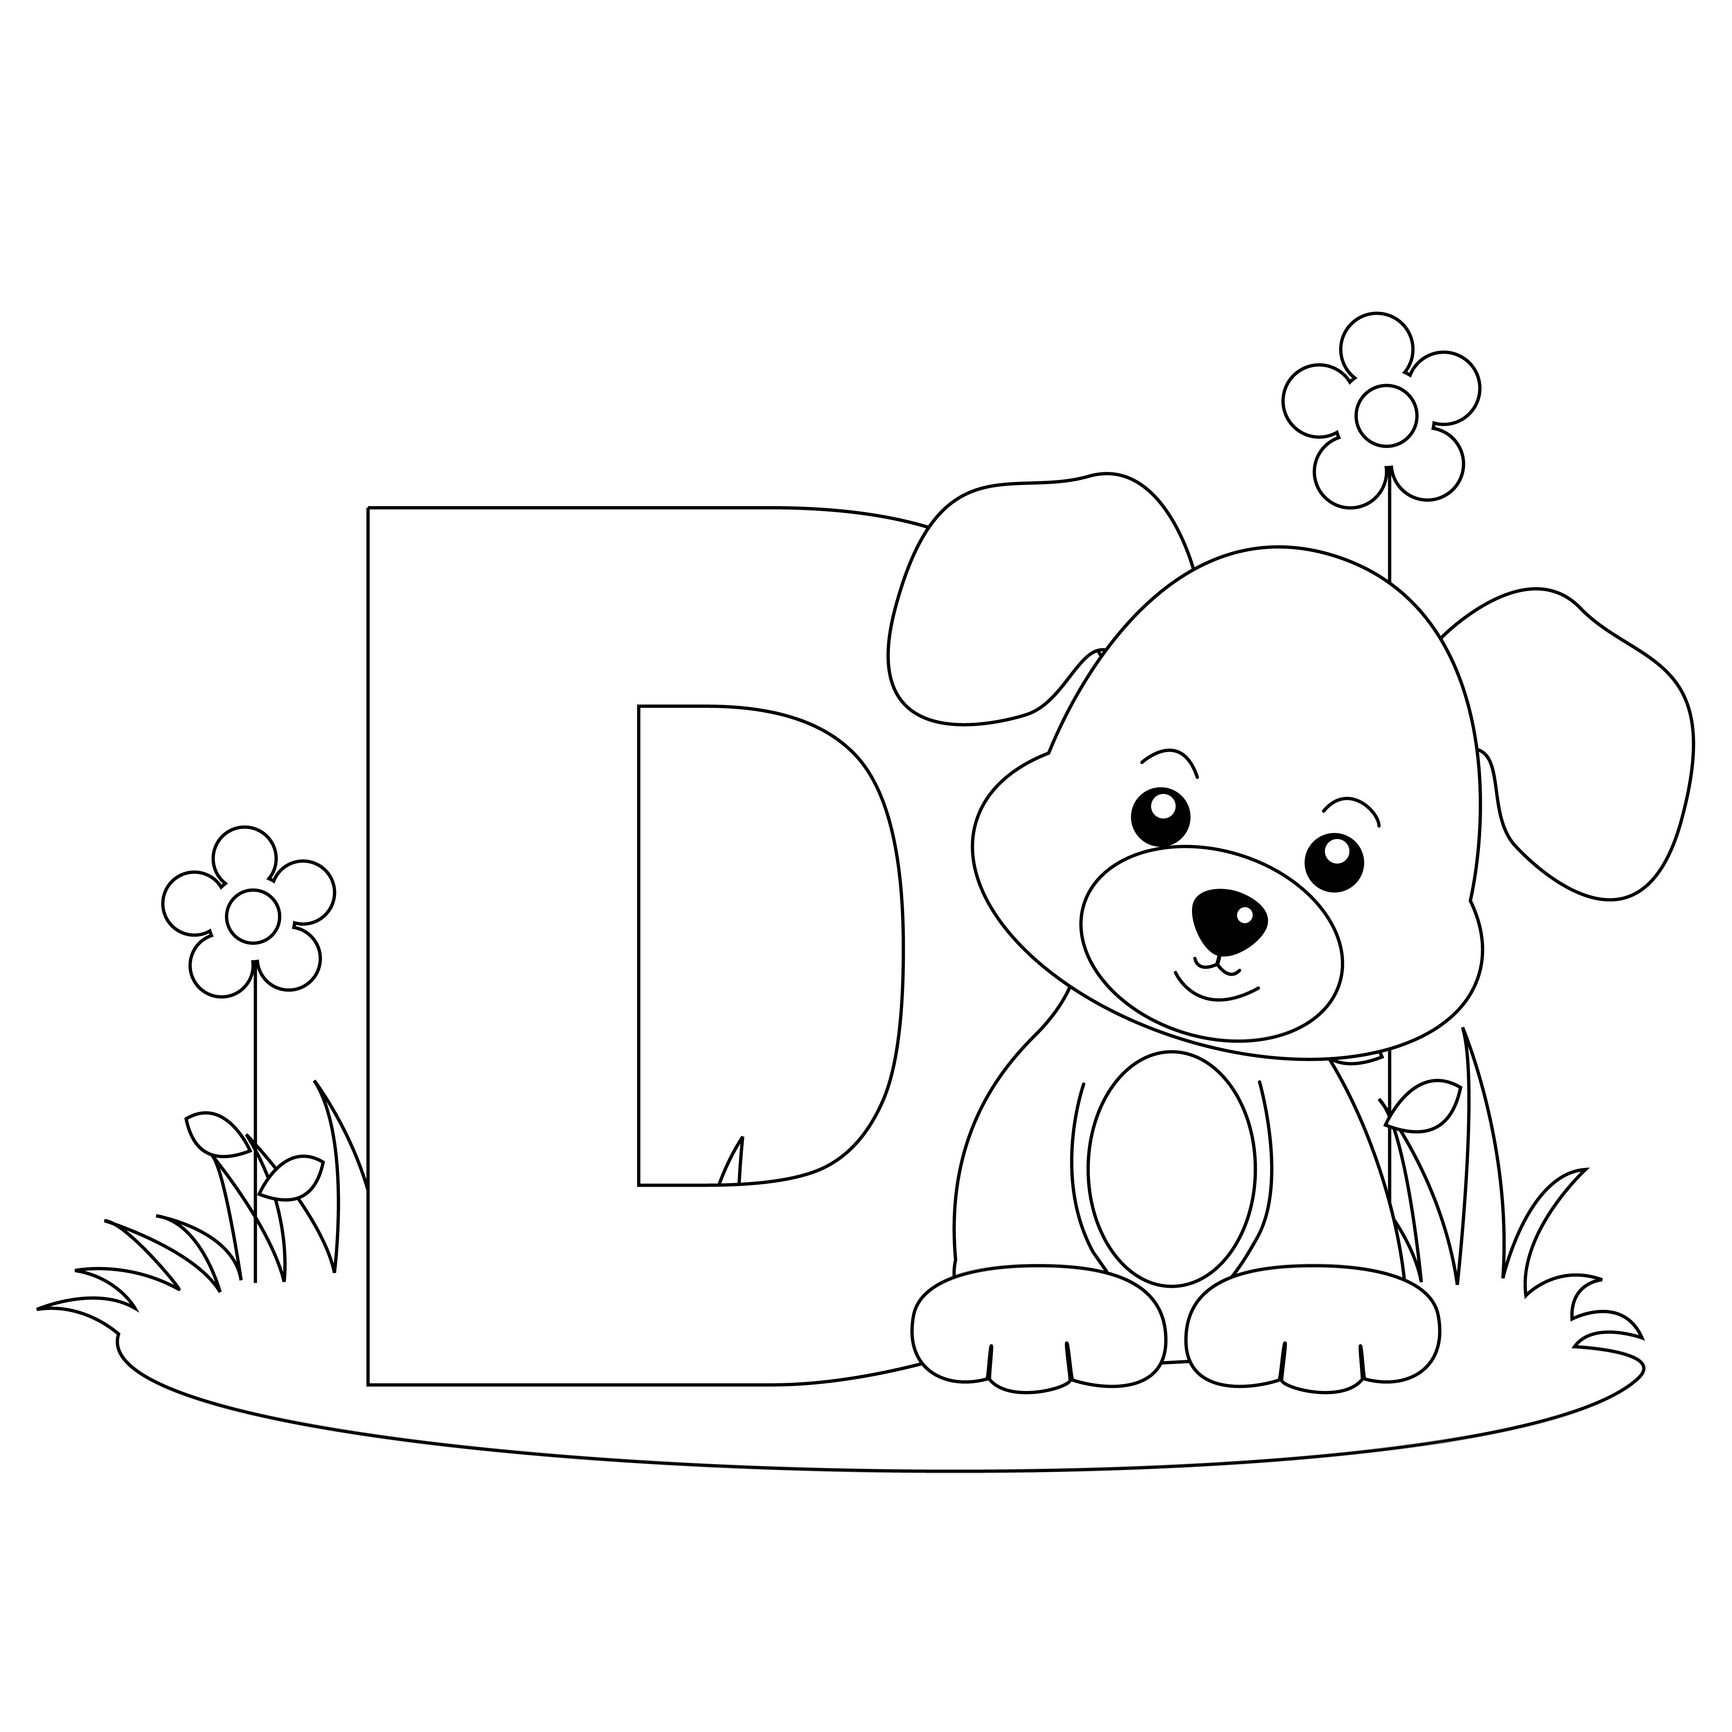 Alphabet pages for coloring book - Alphabet Letter D Coloring Worksheet And Template For Kids Letter D